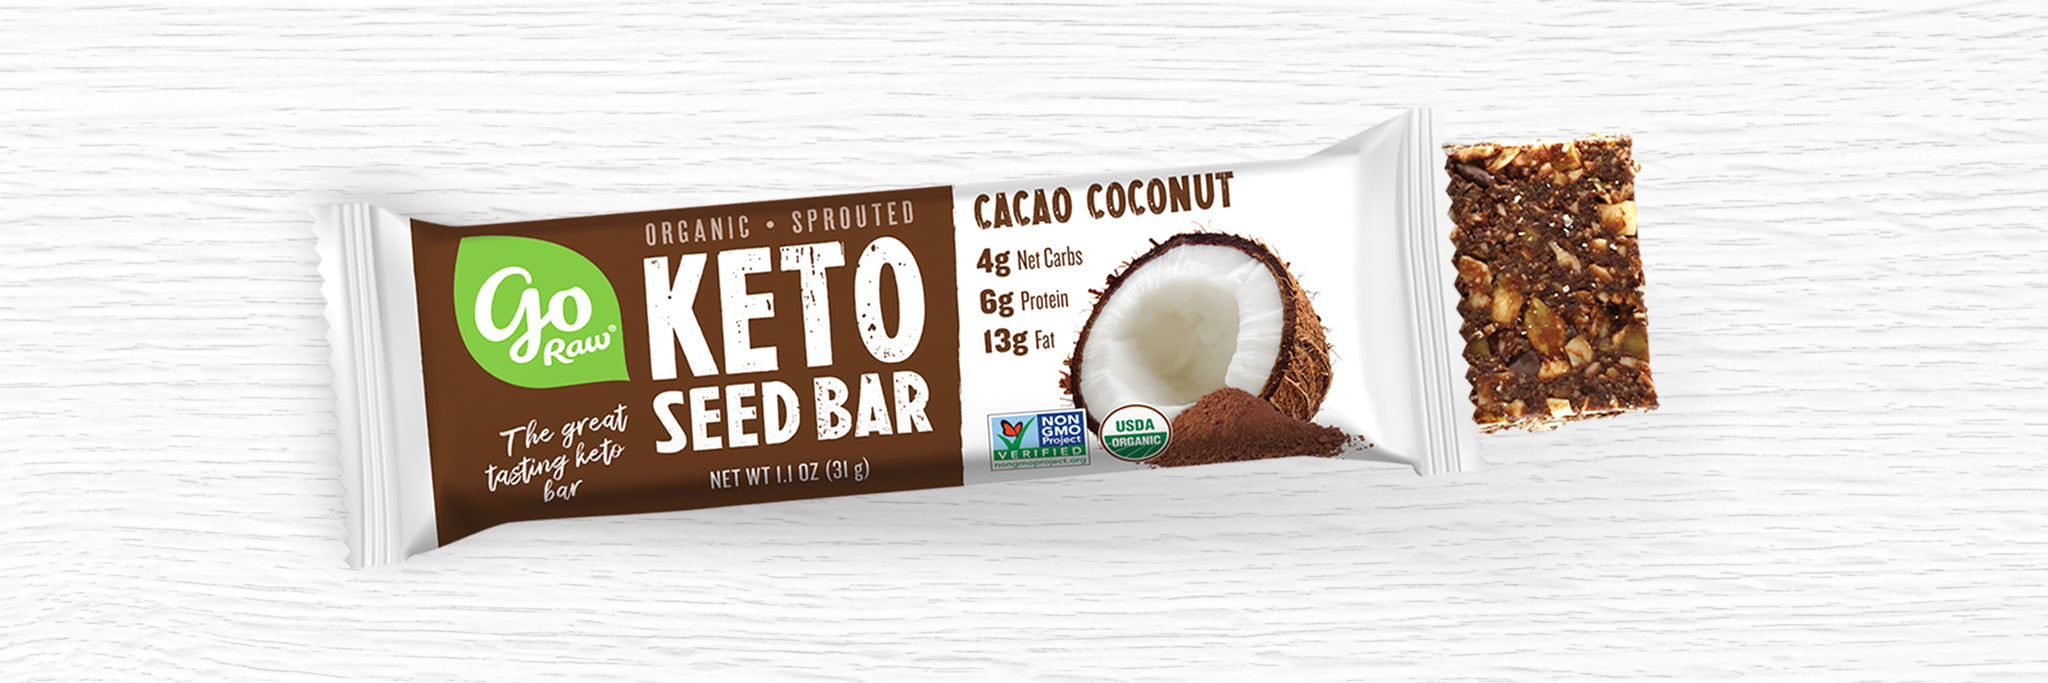 Cacao Coconut Sprouted Keto Bar